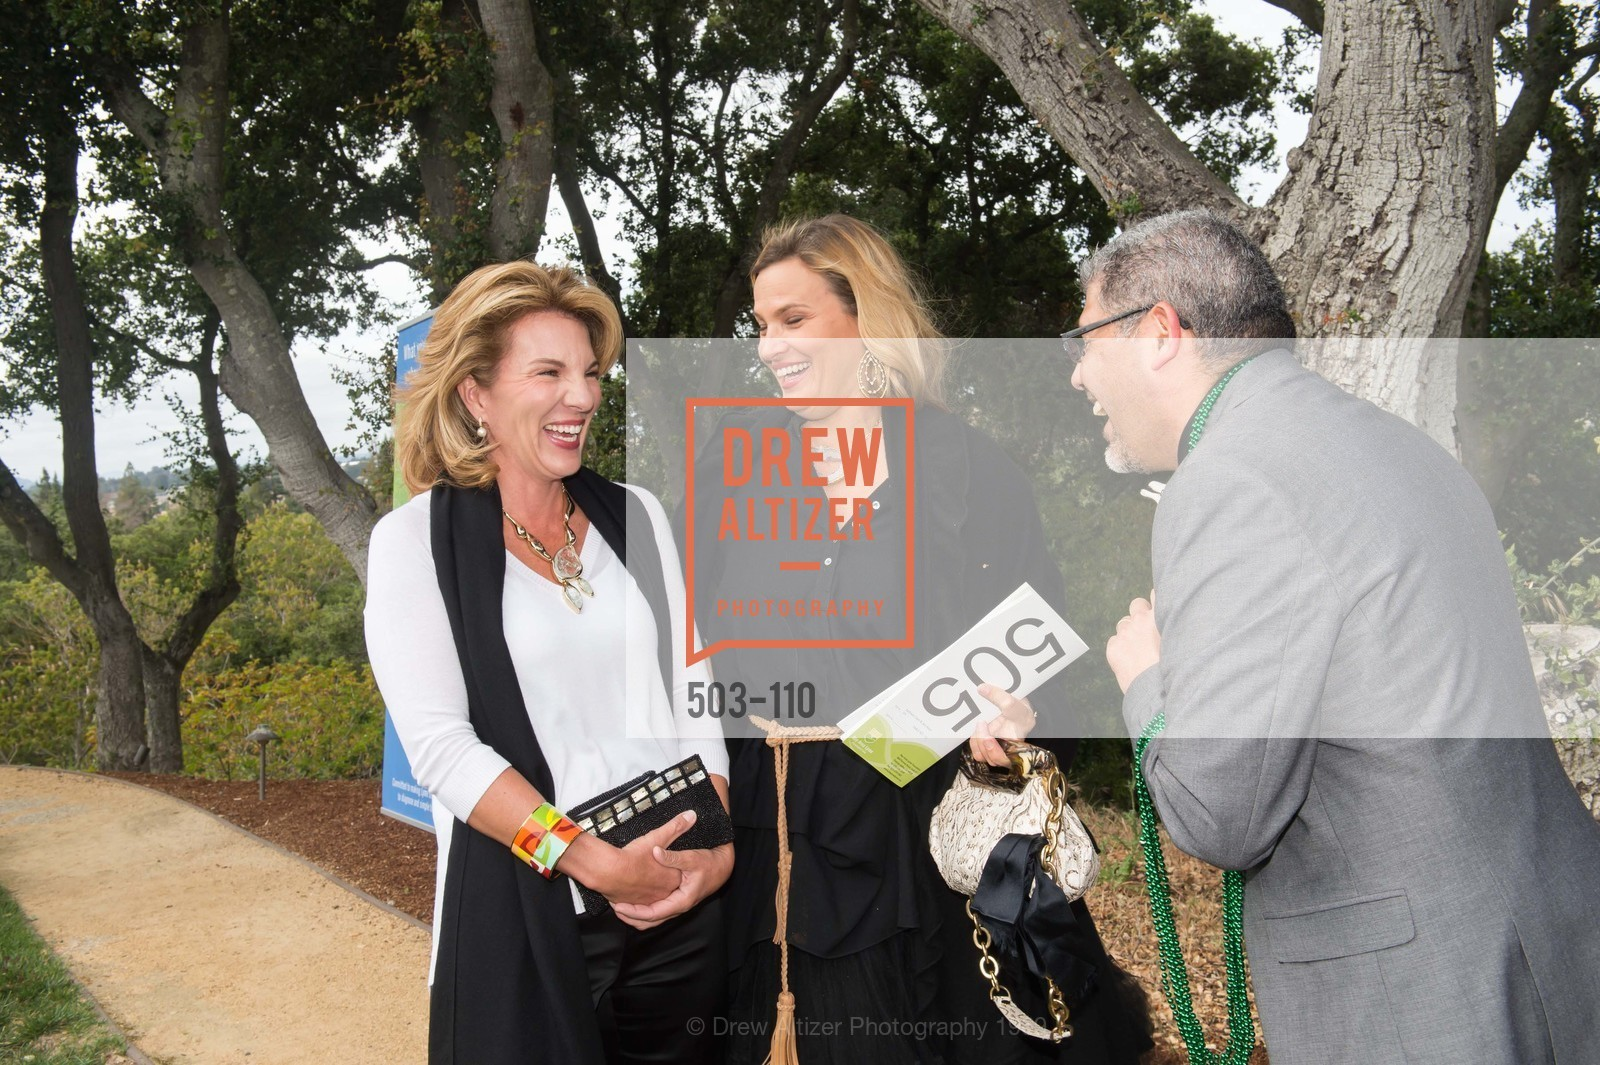 Jen Abed, Kathleen McClellan Sain, LYME AID 2015 Benefiting the Bay Area Lyme Foundation, Private Residence, May 16th, 2015,Drew Altizer, Drew Altizer Photography, full-service event agency, private events, San Francisco photographer, photographer California